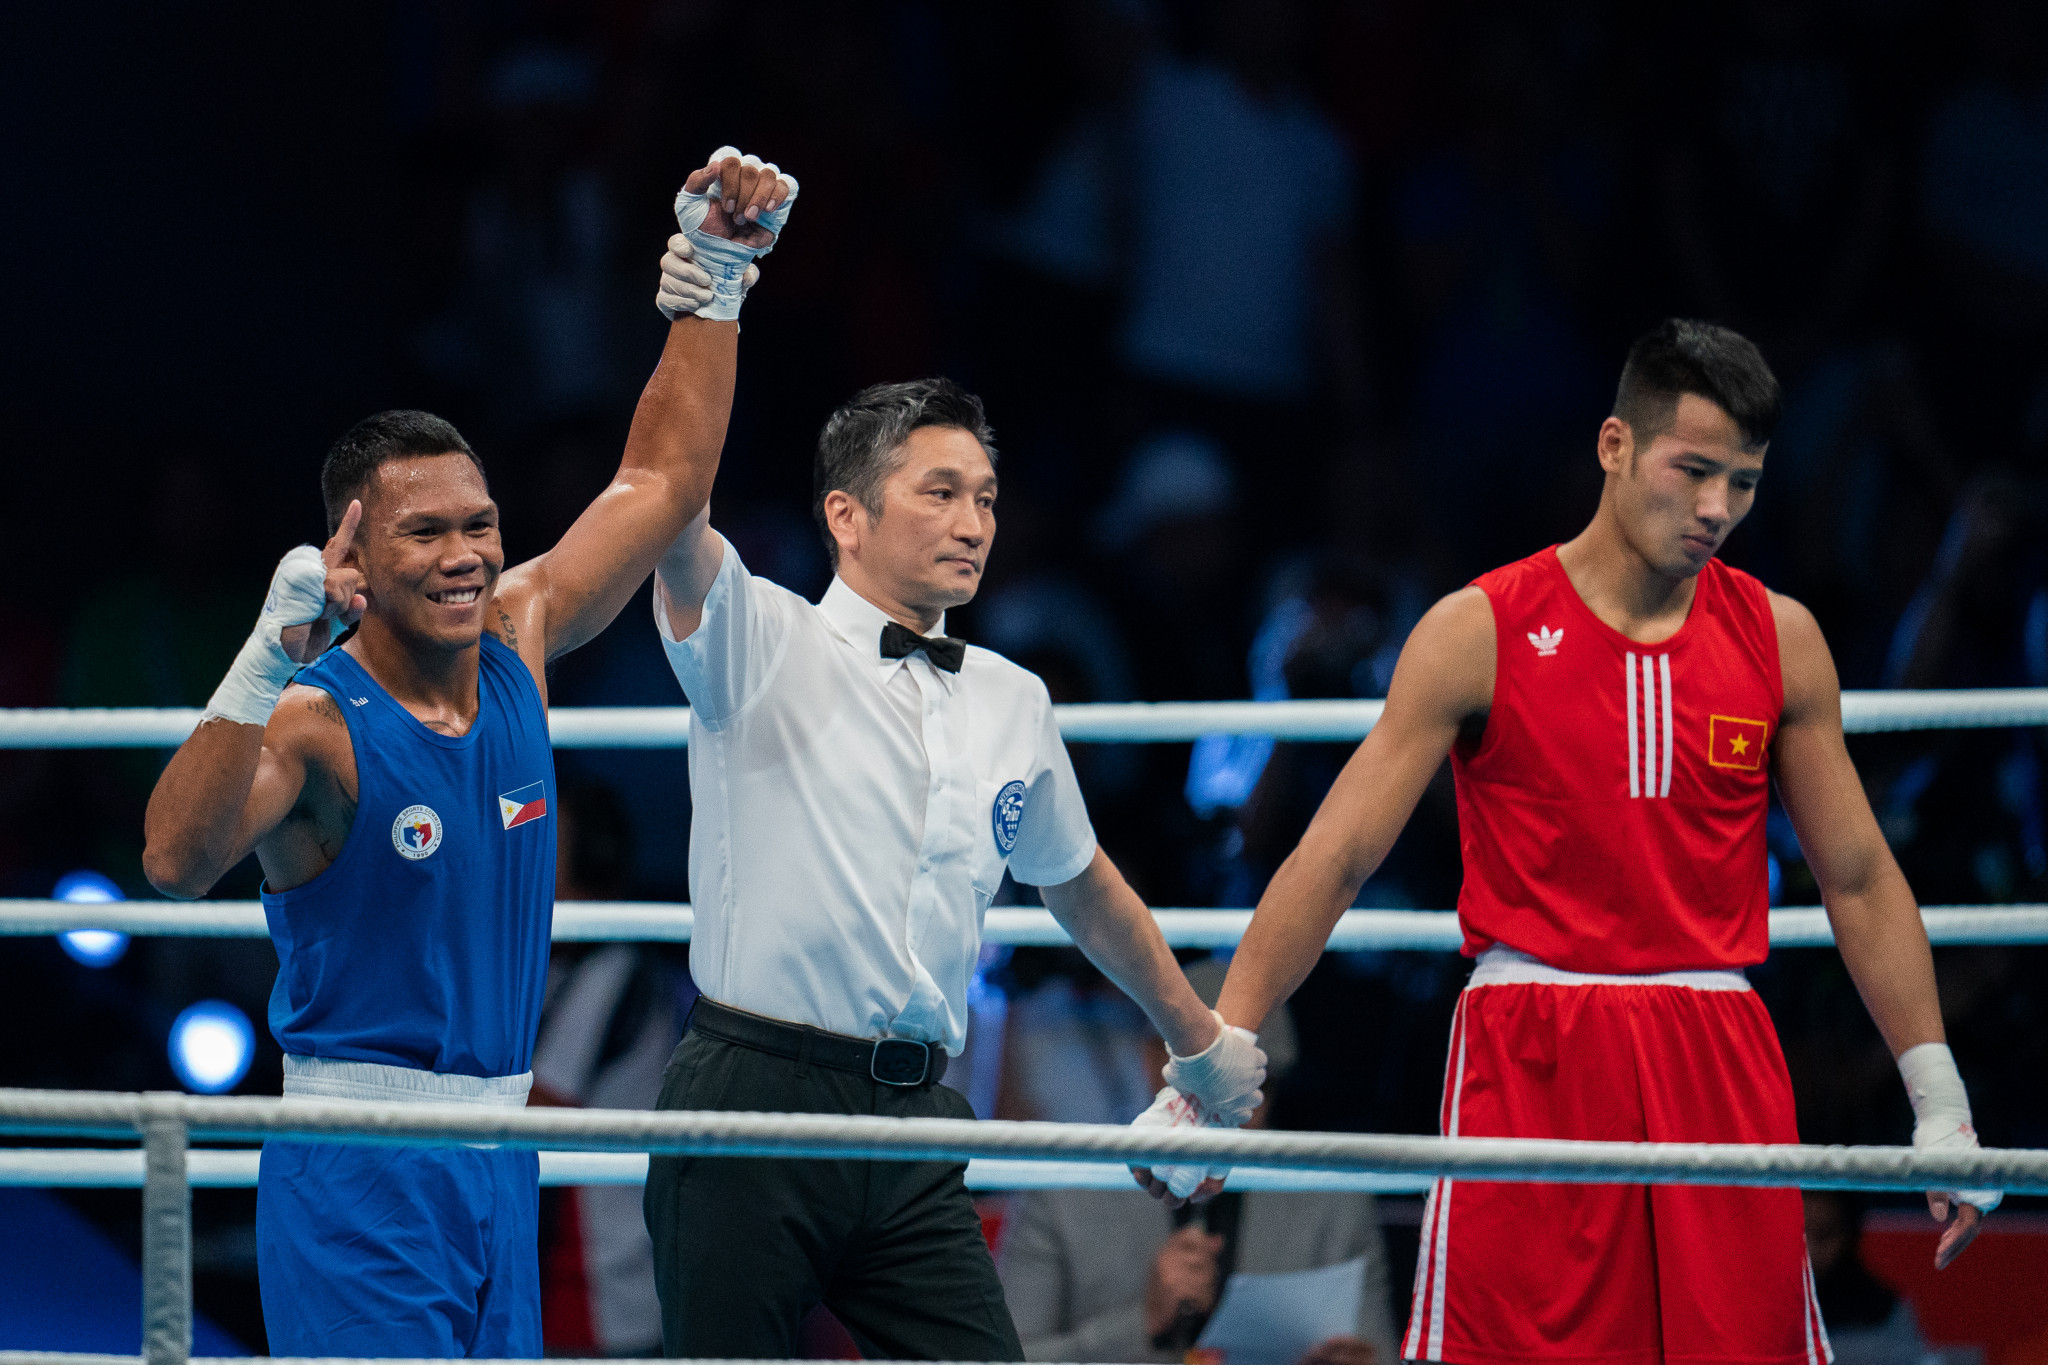 Philippines offer to host Asia and Oceania Olympic boxing qualifier if moved from Wuhan